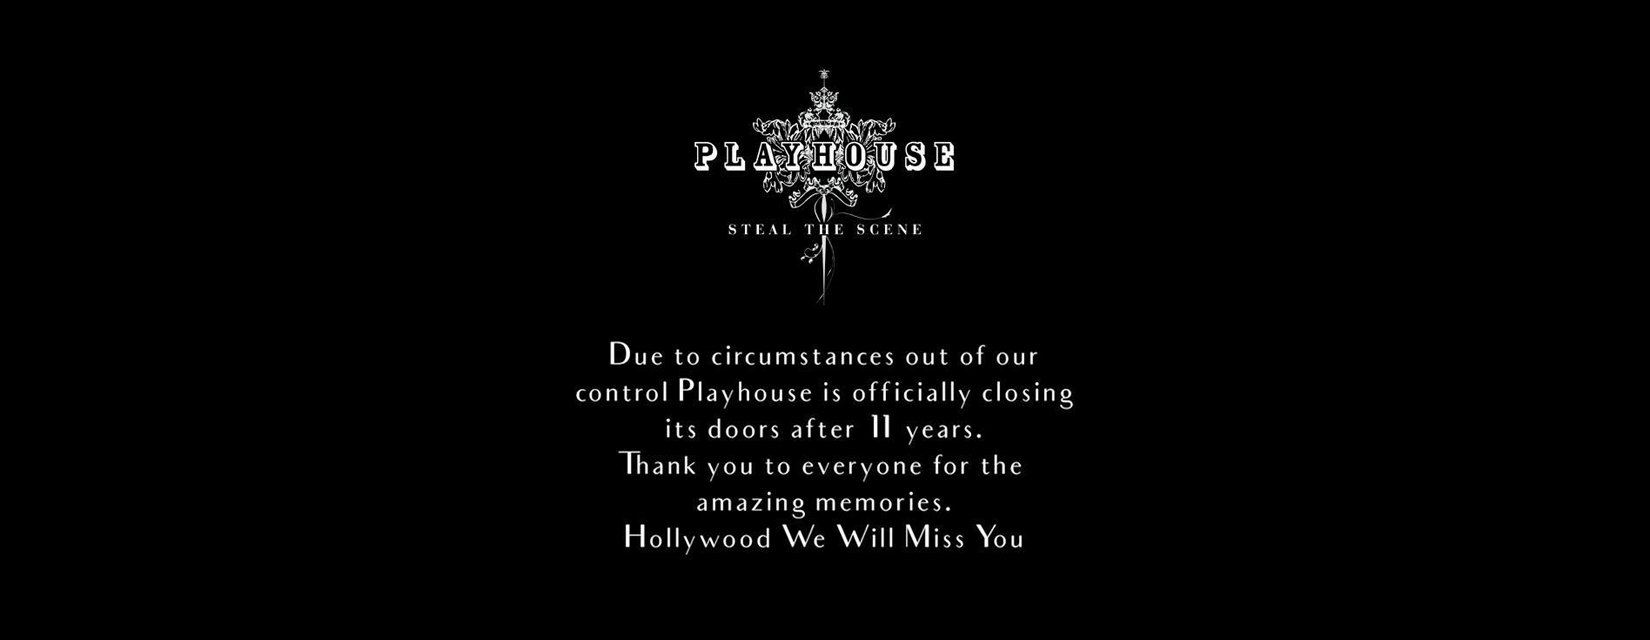 Playhouse Nightclub Now Closed